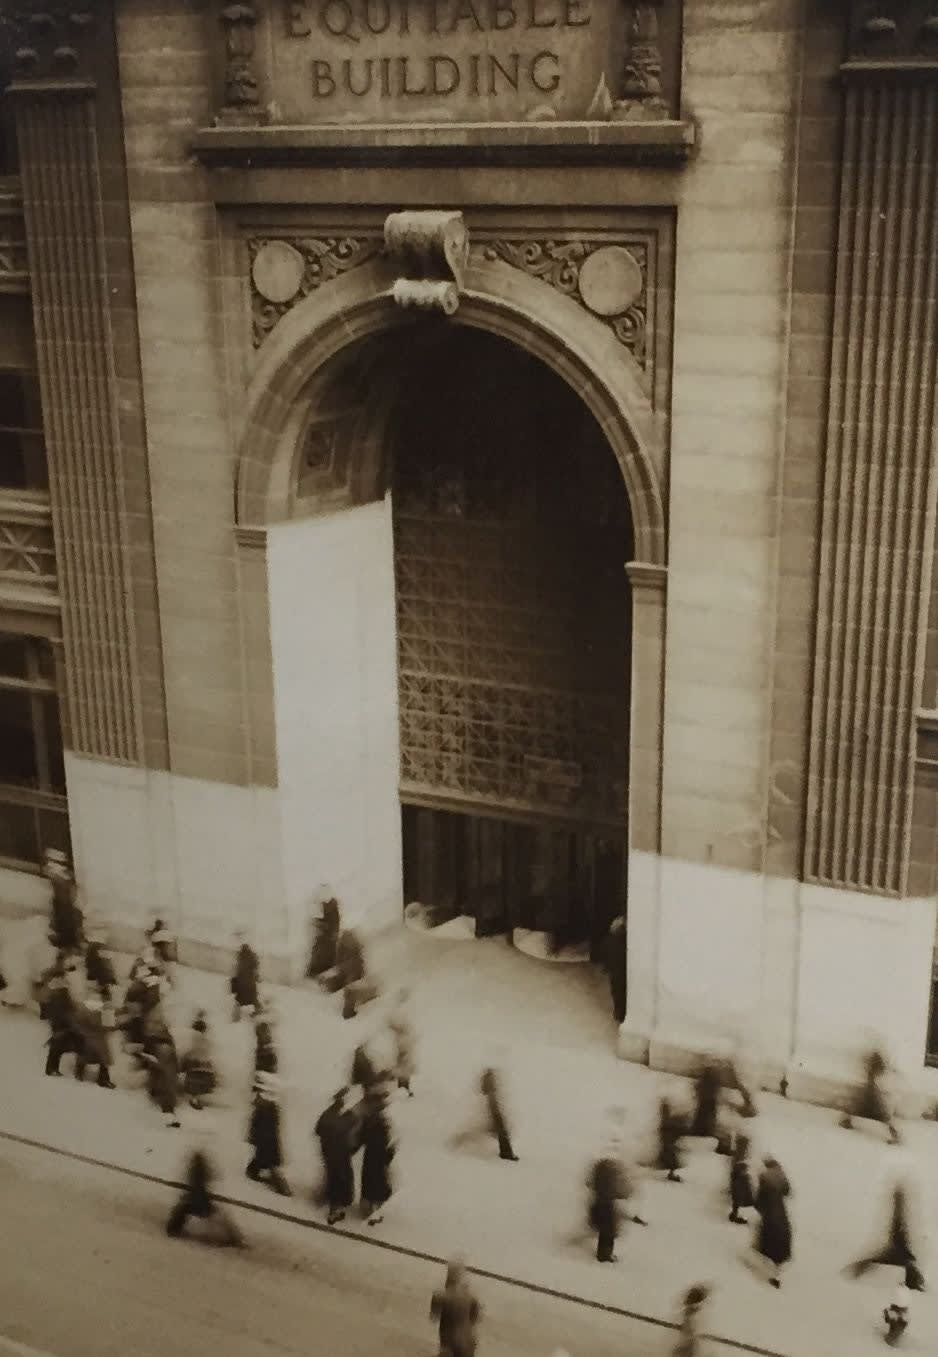 Fred Zinnemann People Walking in front of Equitable Building, c. 1932 Vintage gelatin silver print 3 3/8 x 2 3/8 inches